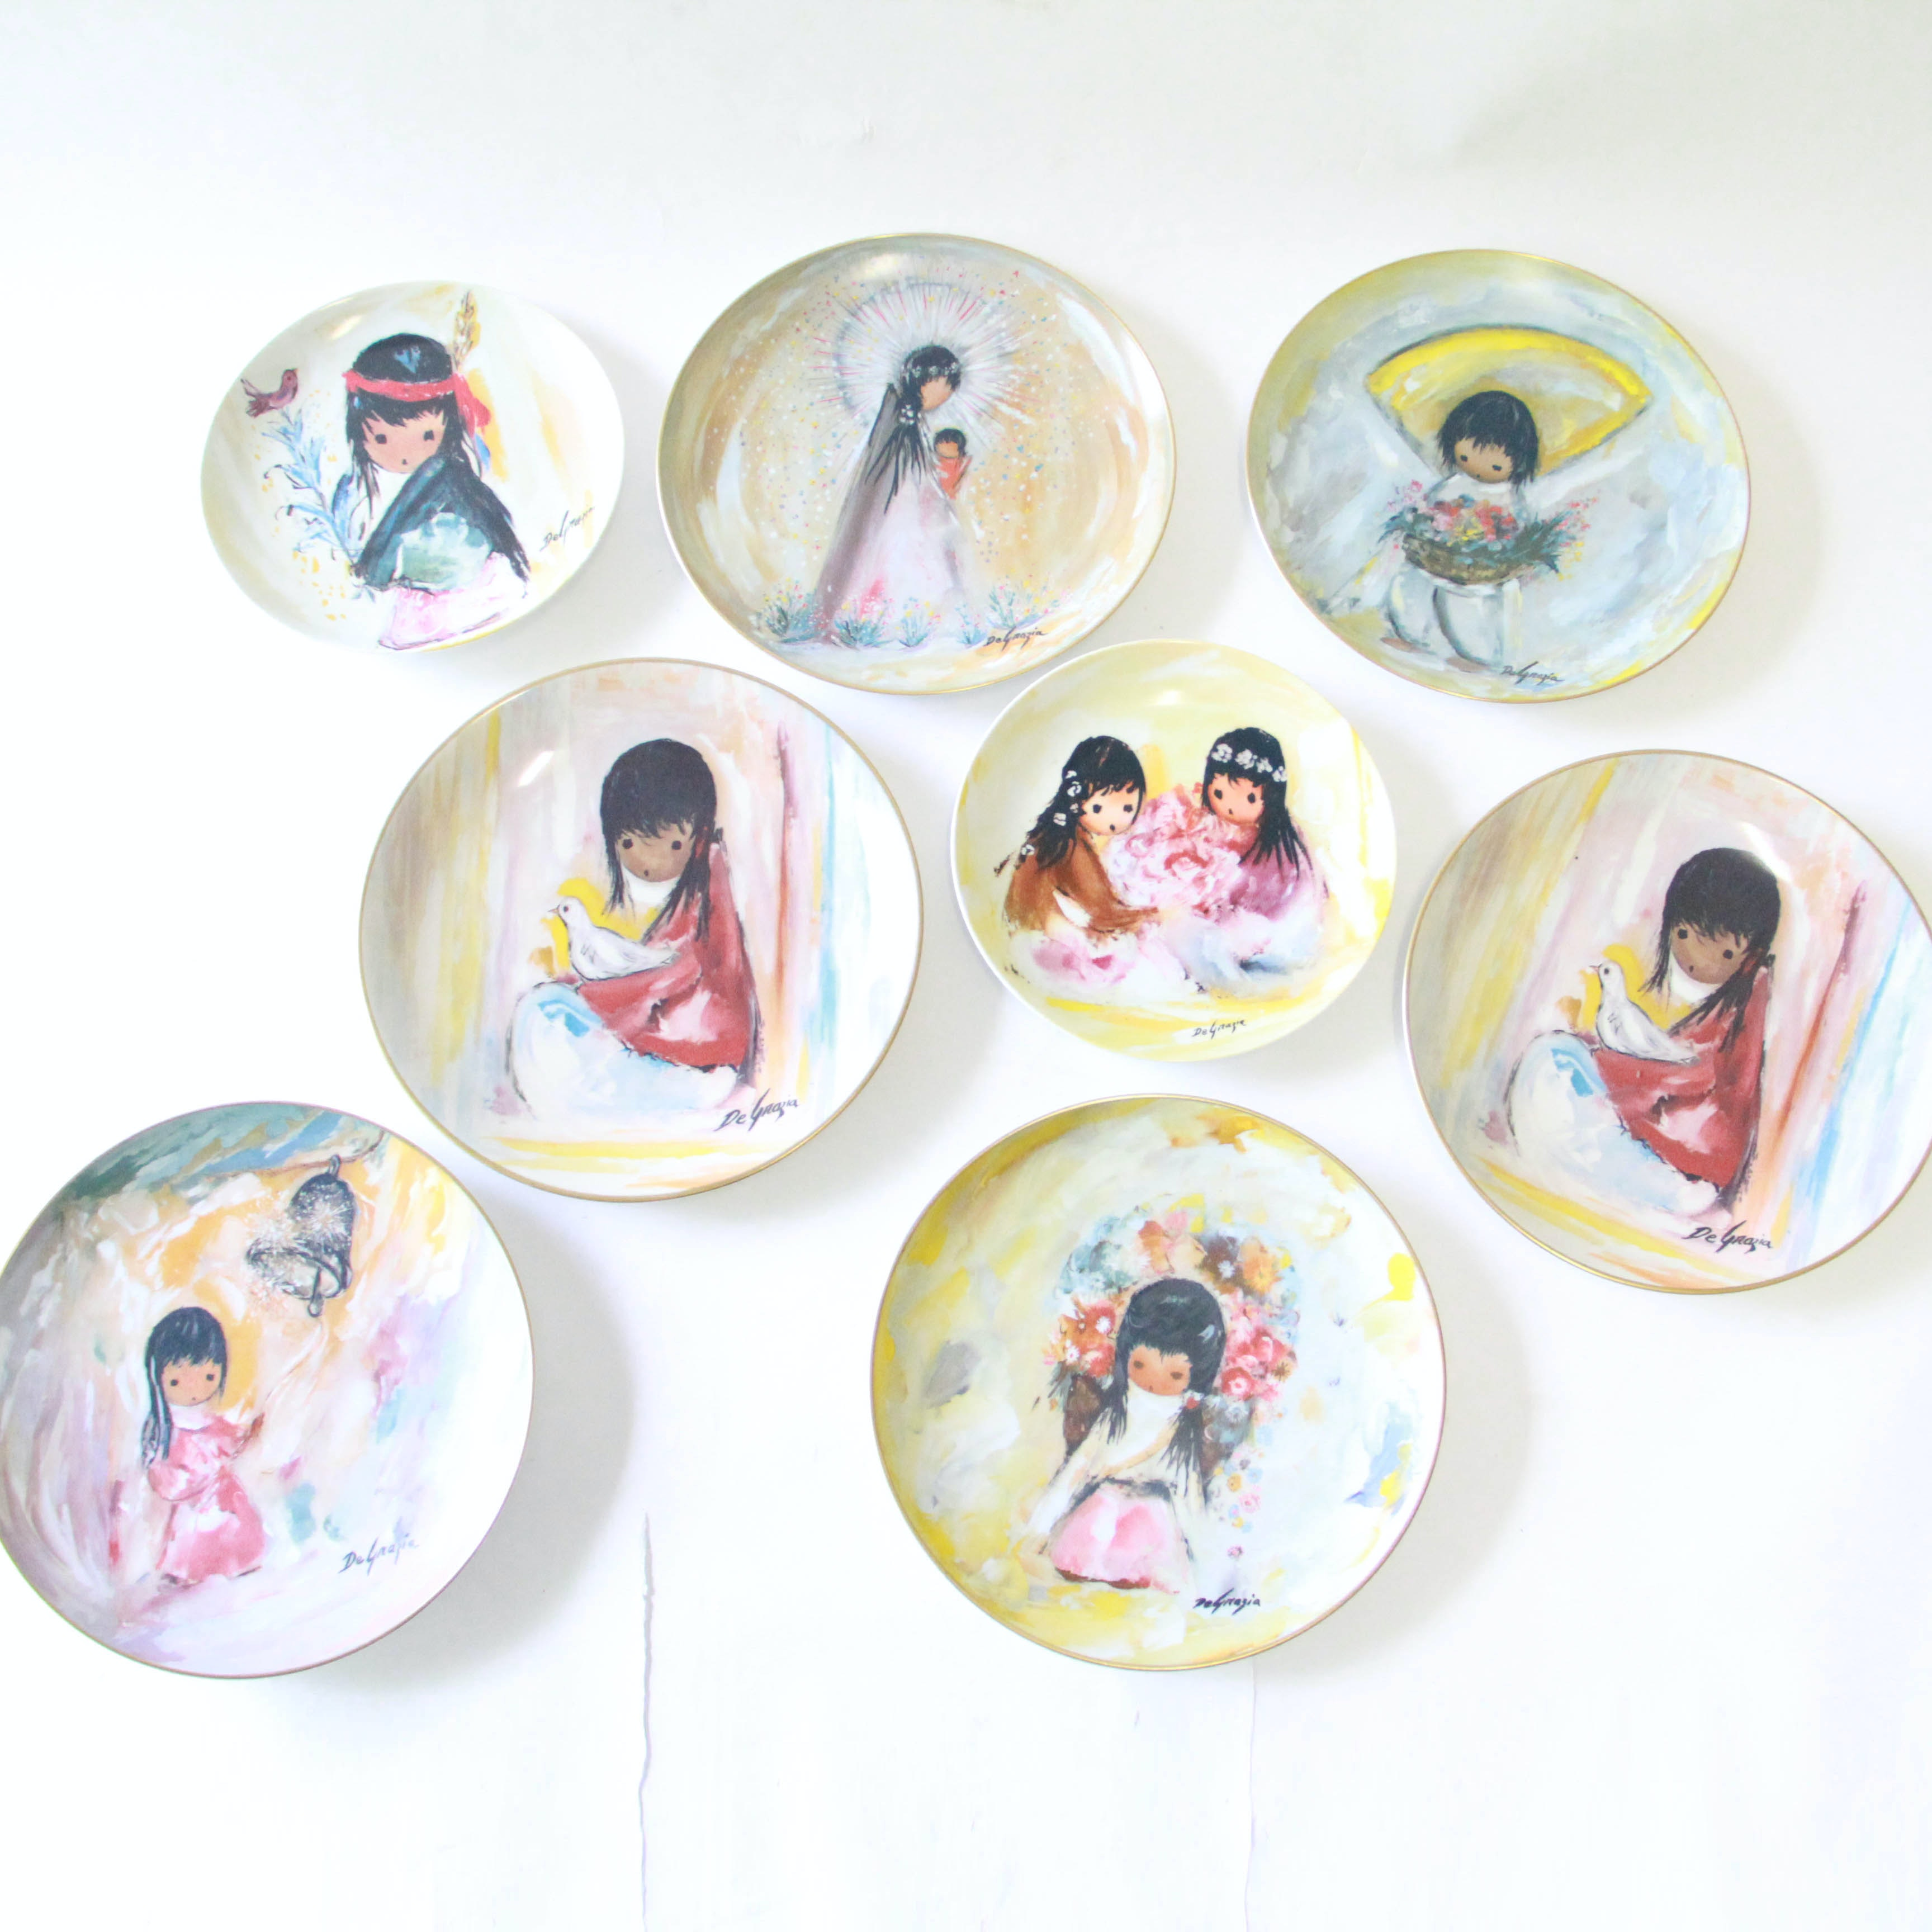 DeGrazia Limited Edition Plates Including Gorham and Fairmont